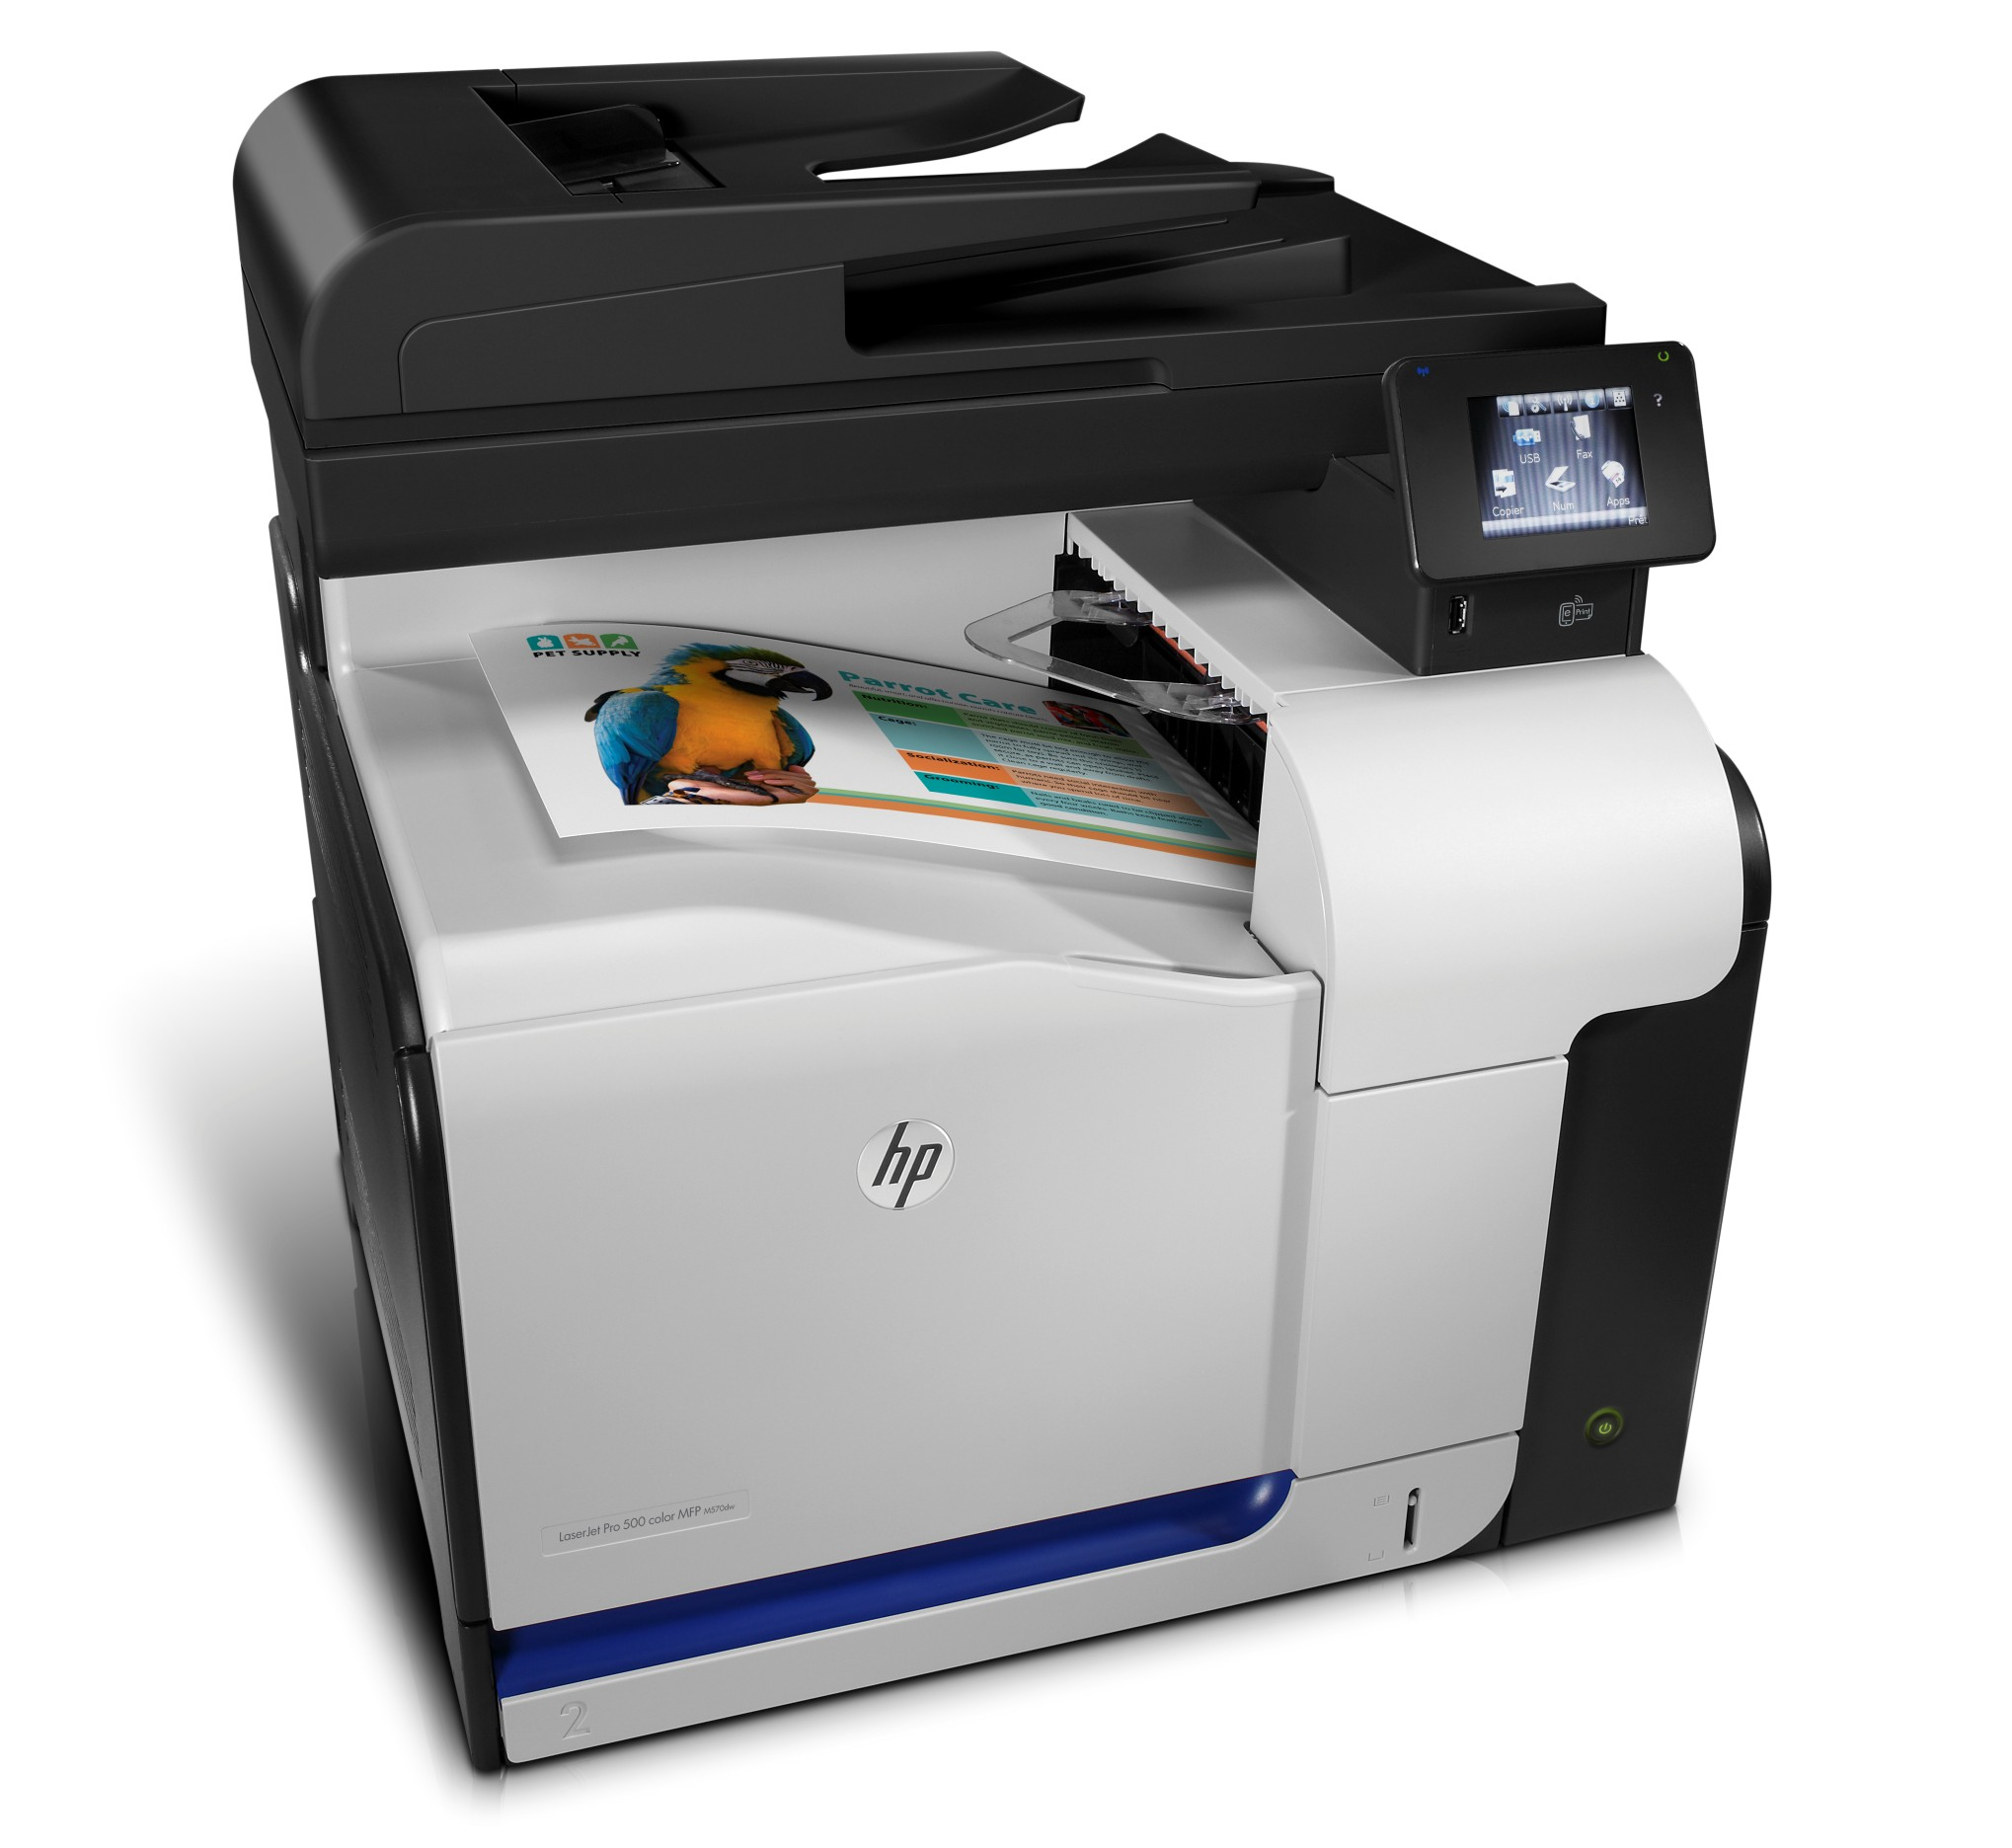 New HP multifunction printers and scanners for cost ...